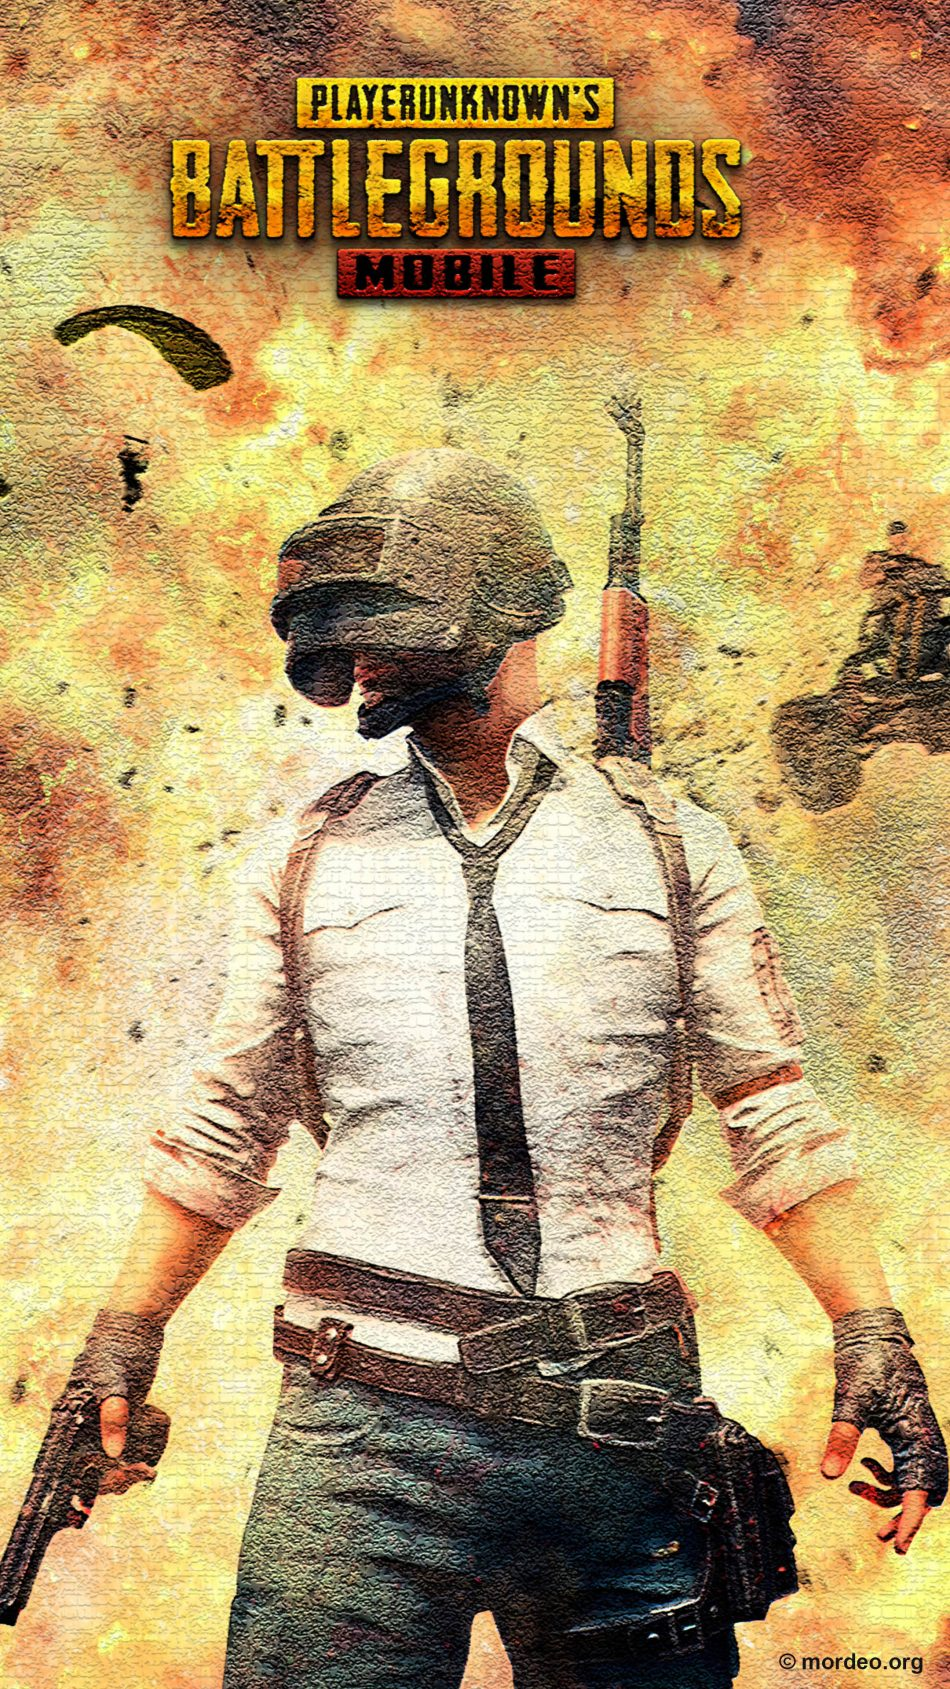 PUBG Mobile PlayerUnknown's Battlegrounds 4K Ultra HD Mobile Wallpaper